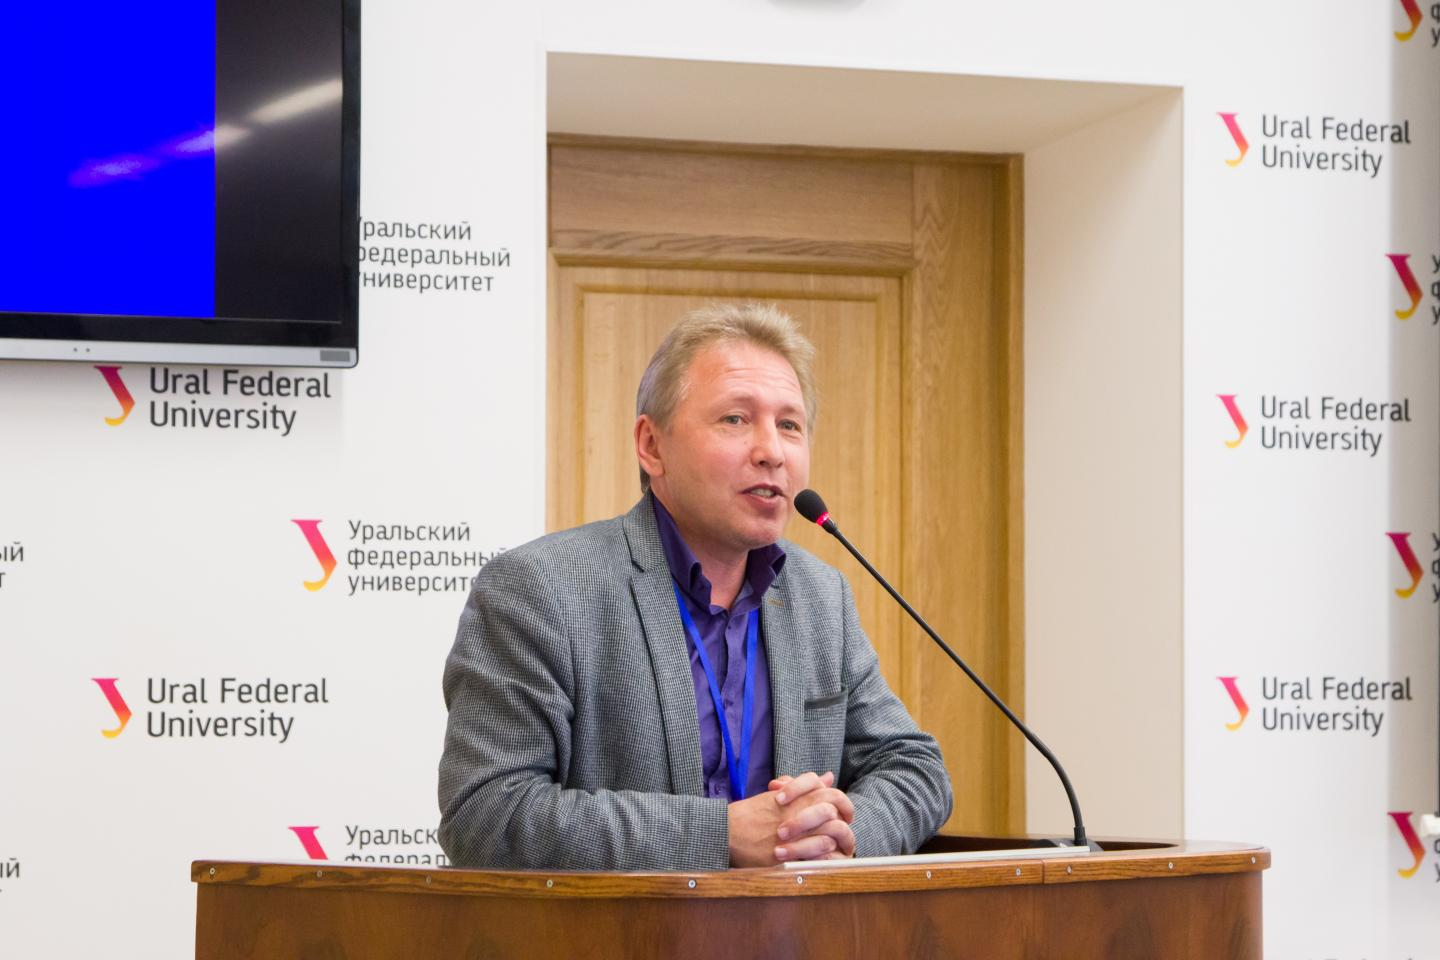 Chief of the survey Dr. Sergey Kiselev